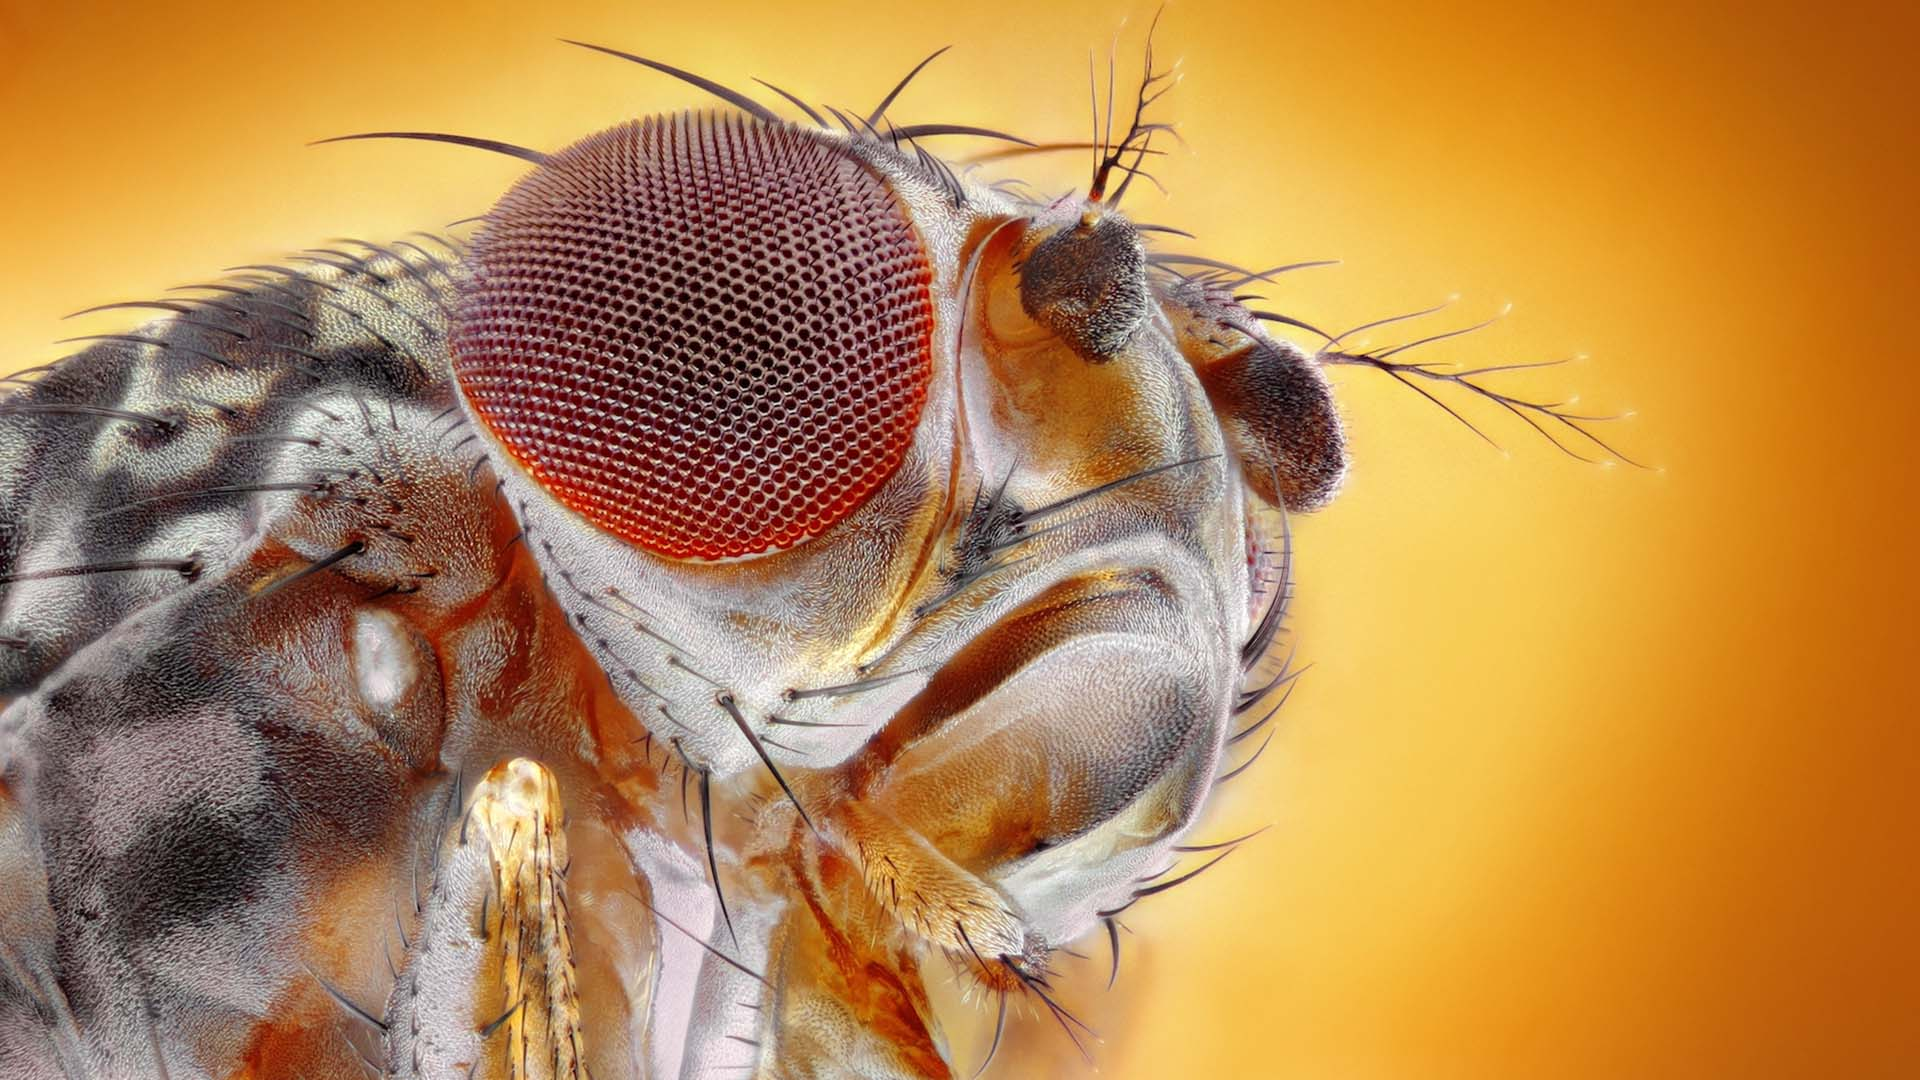 image of a fruit fly